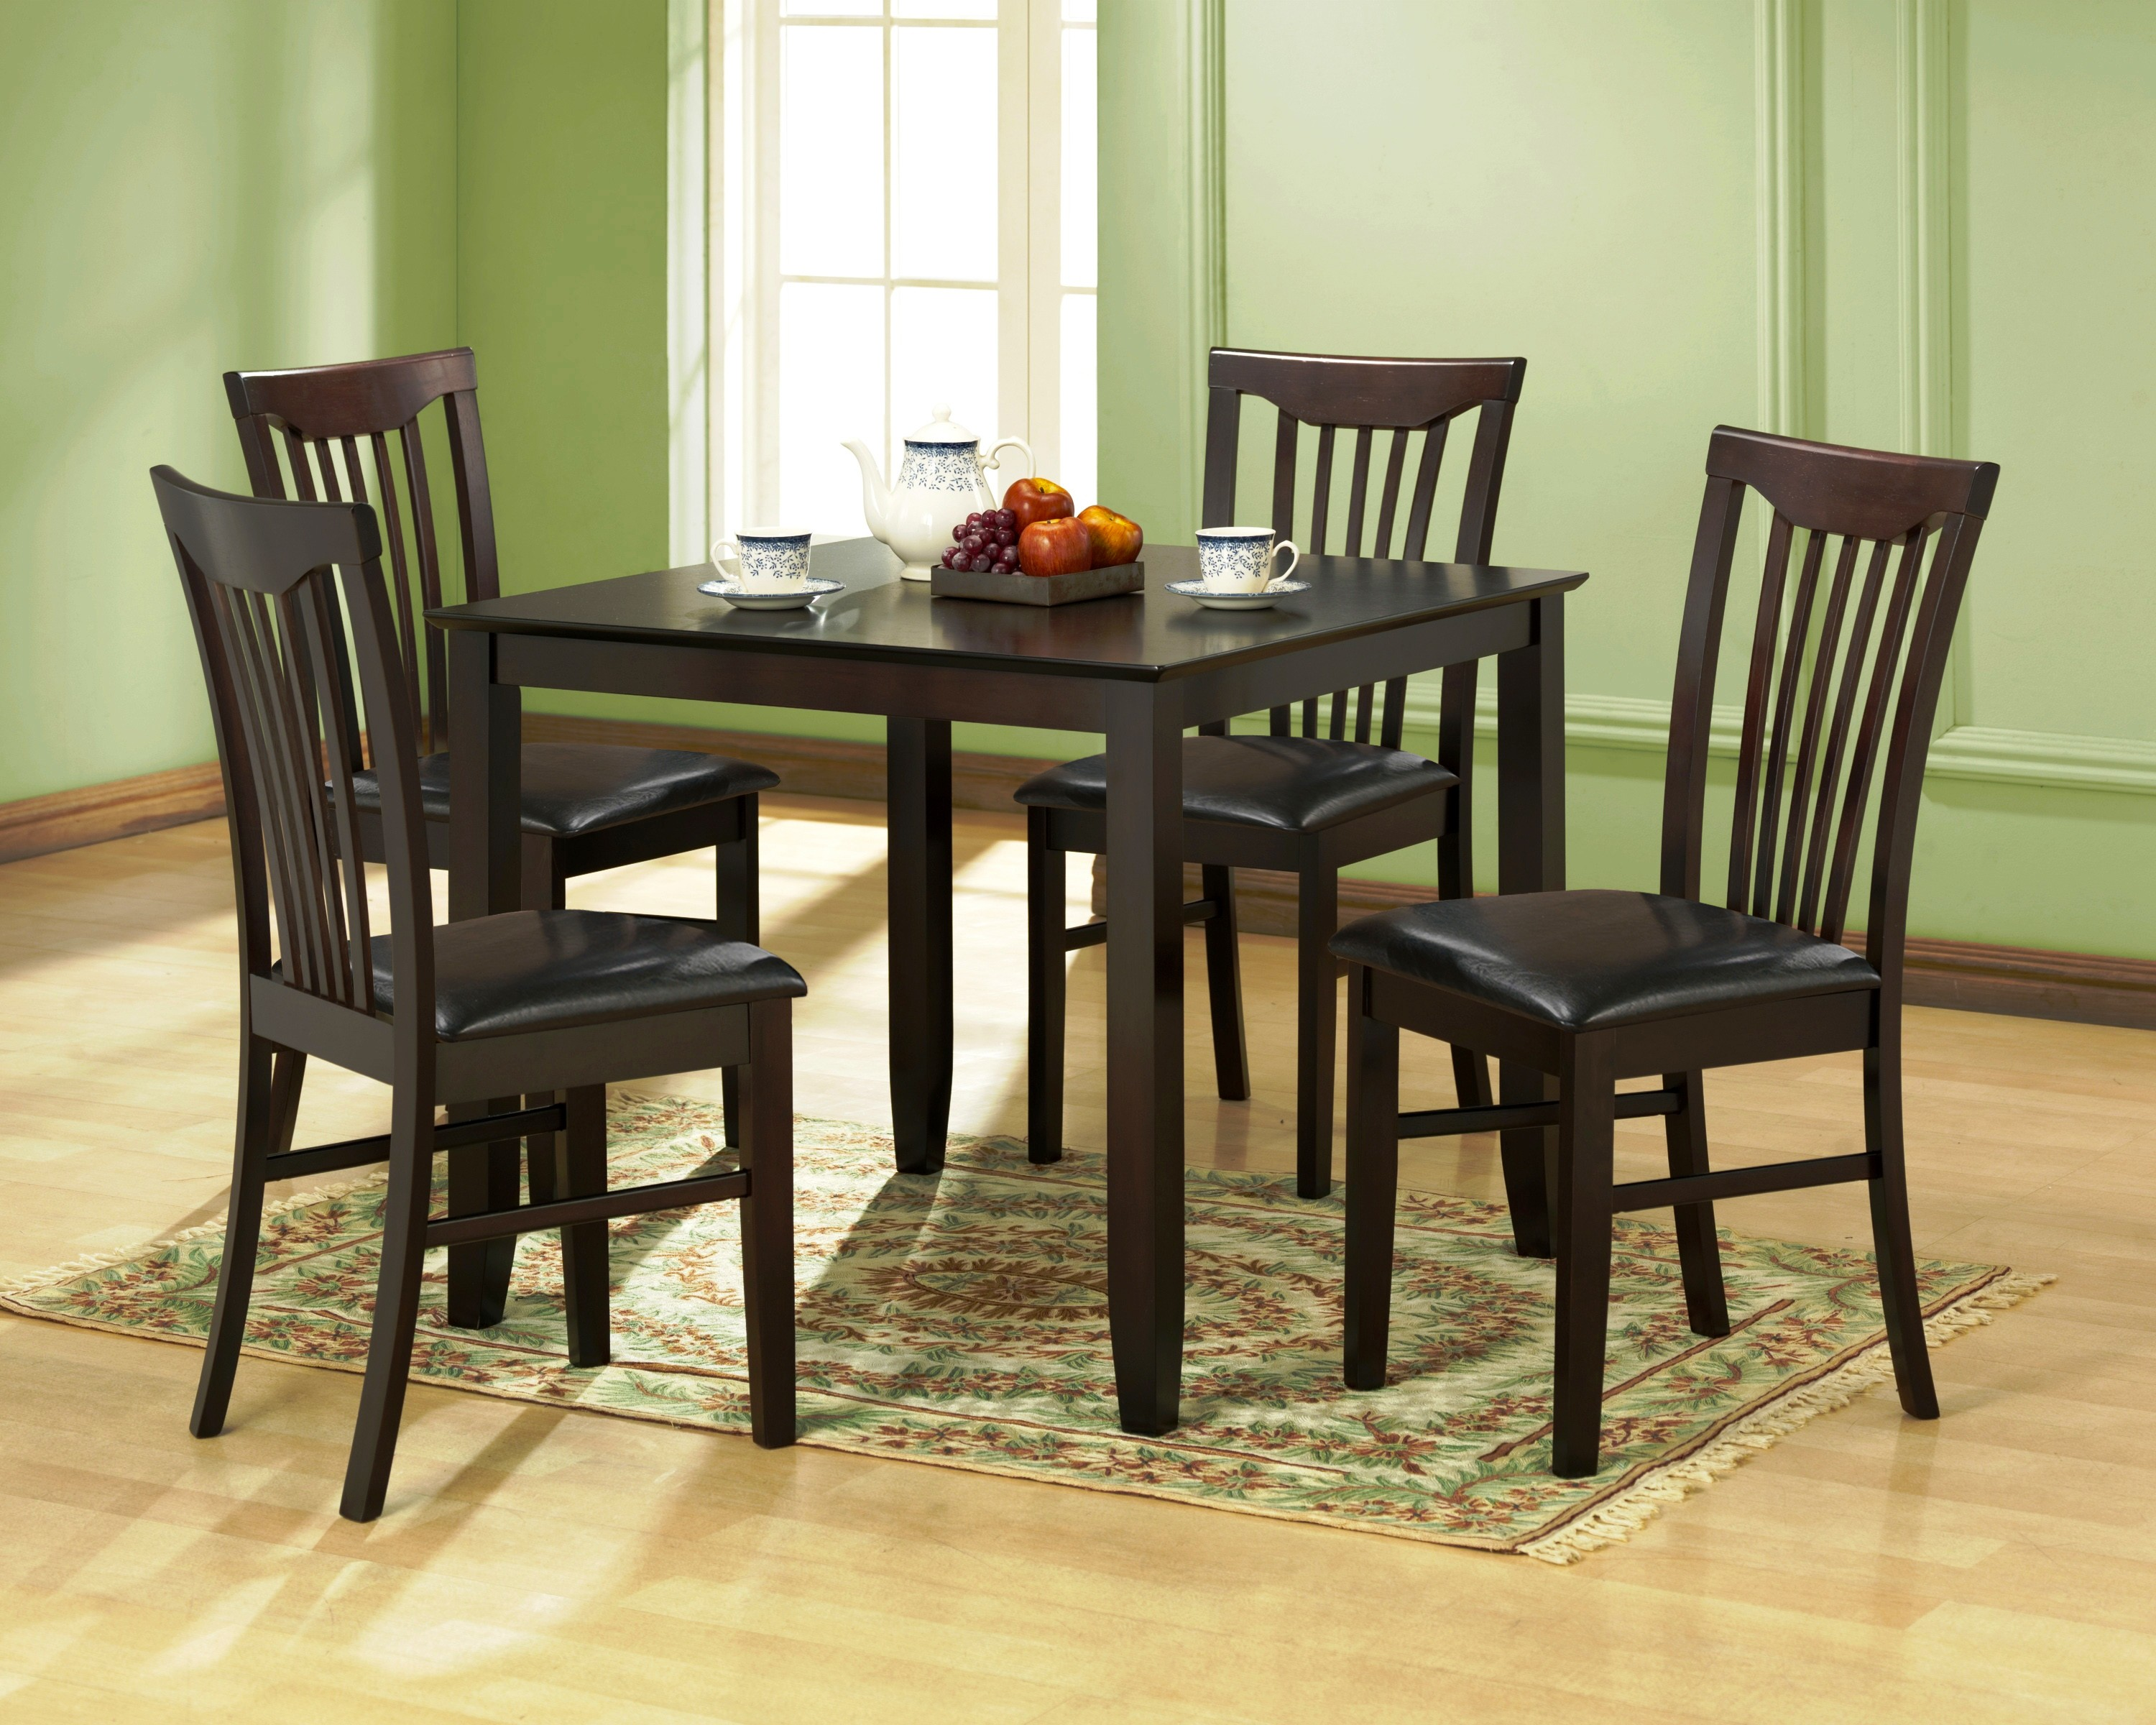 dining table set deals avalon 5pc dining table set deals